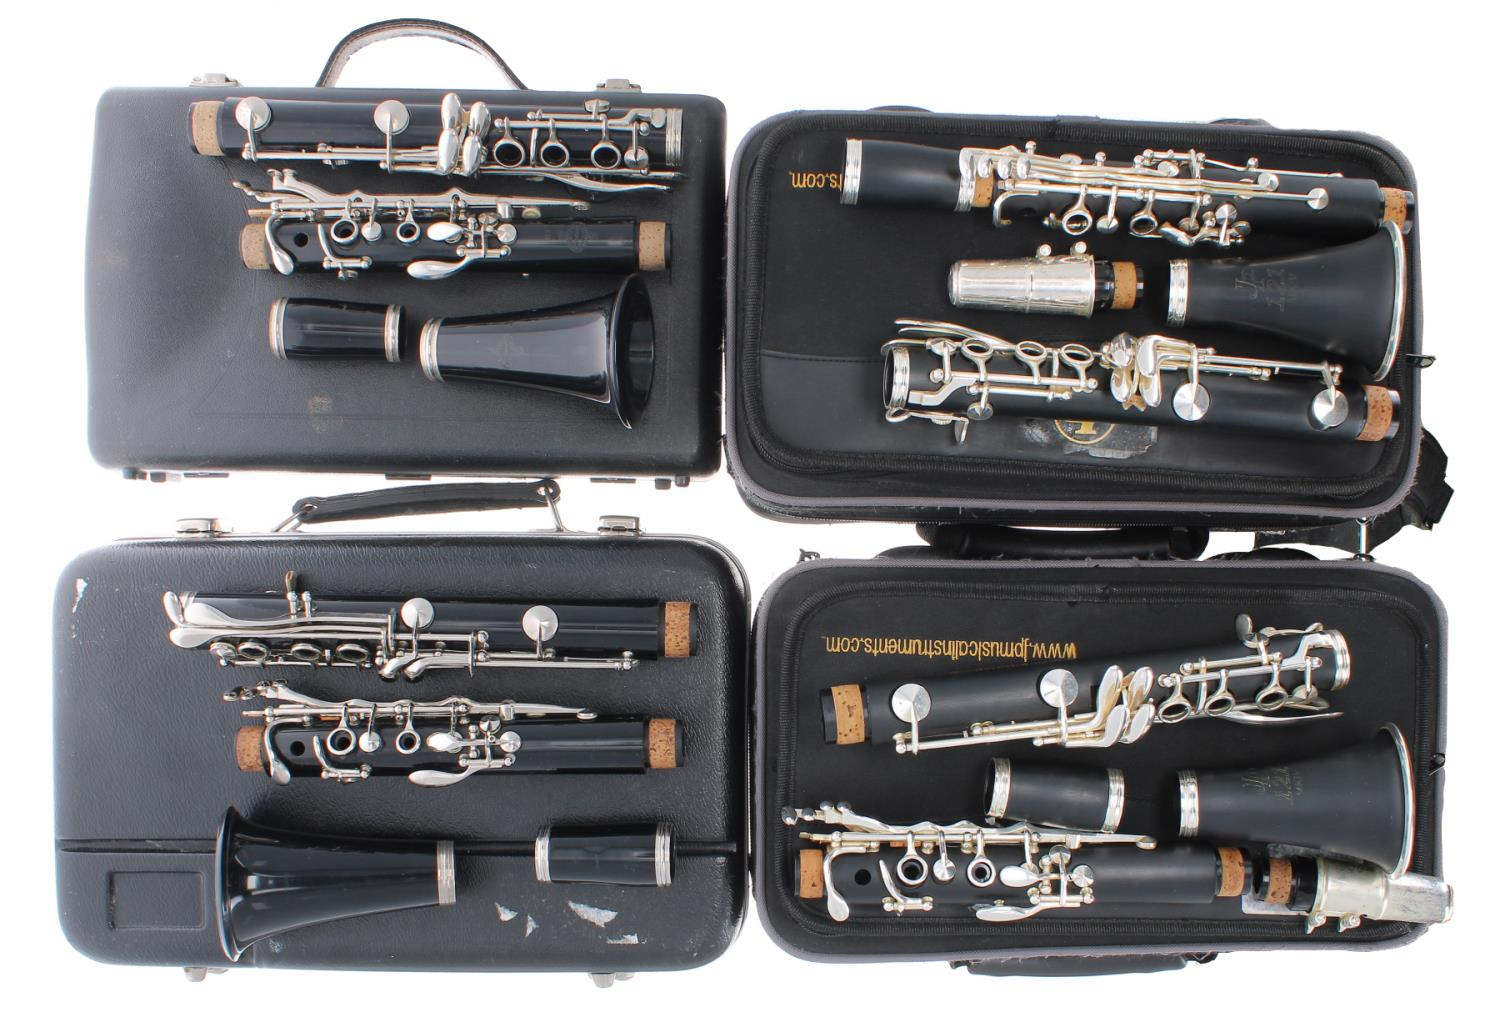 Two JP121 MKIV Model clarinets, both cased; also a Buffet Crampon & Cie clarinet and another, both